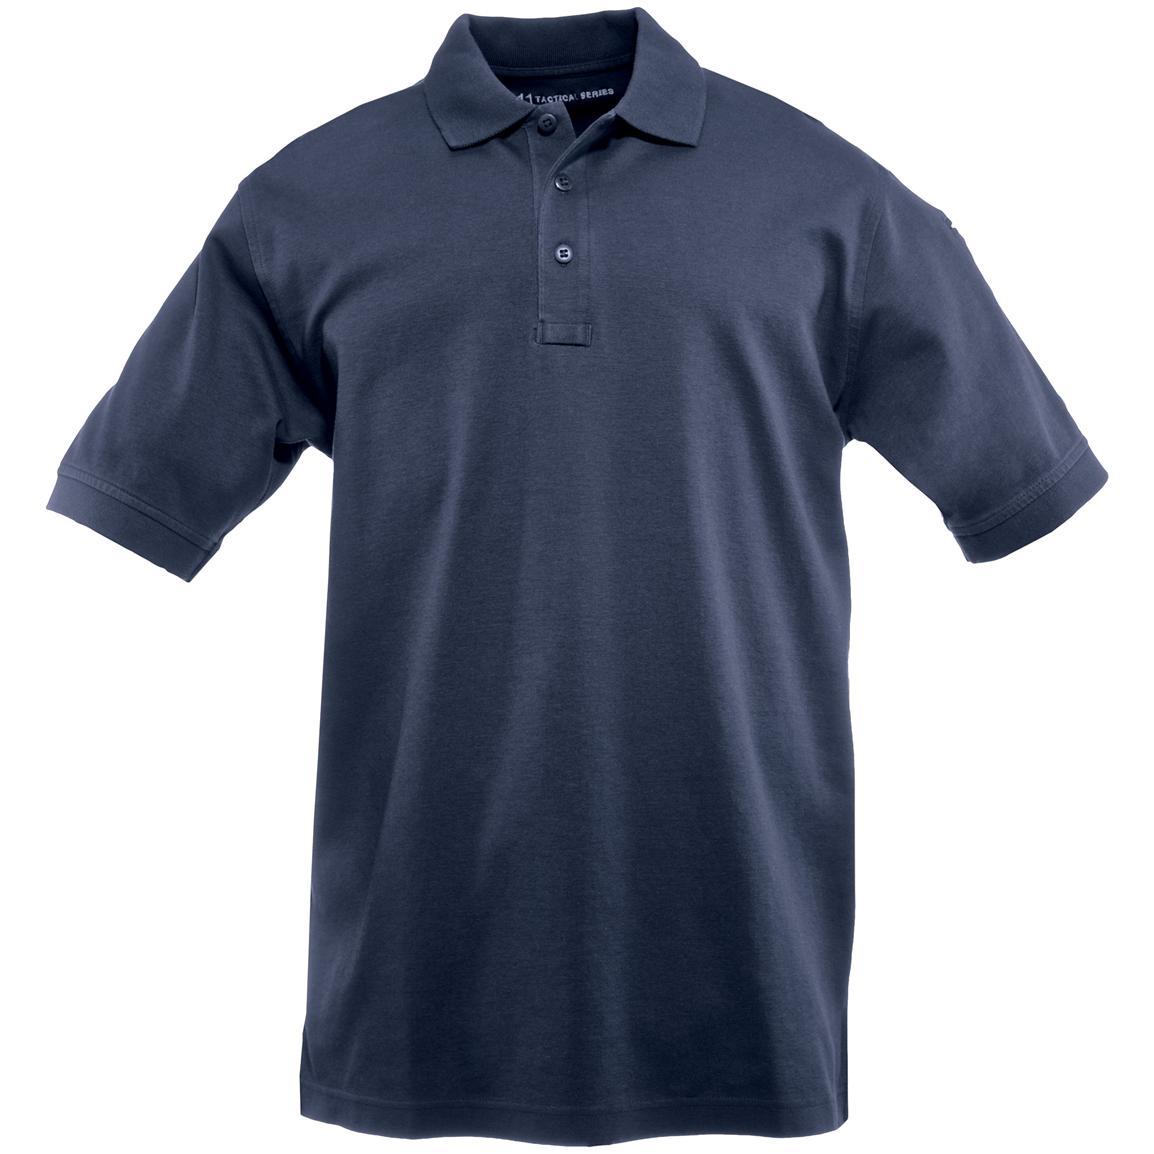 Tactical Jersey Polo from 5.11 Tactical, Dark Navy